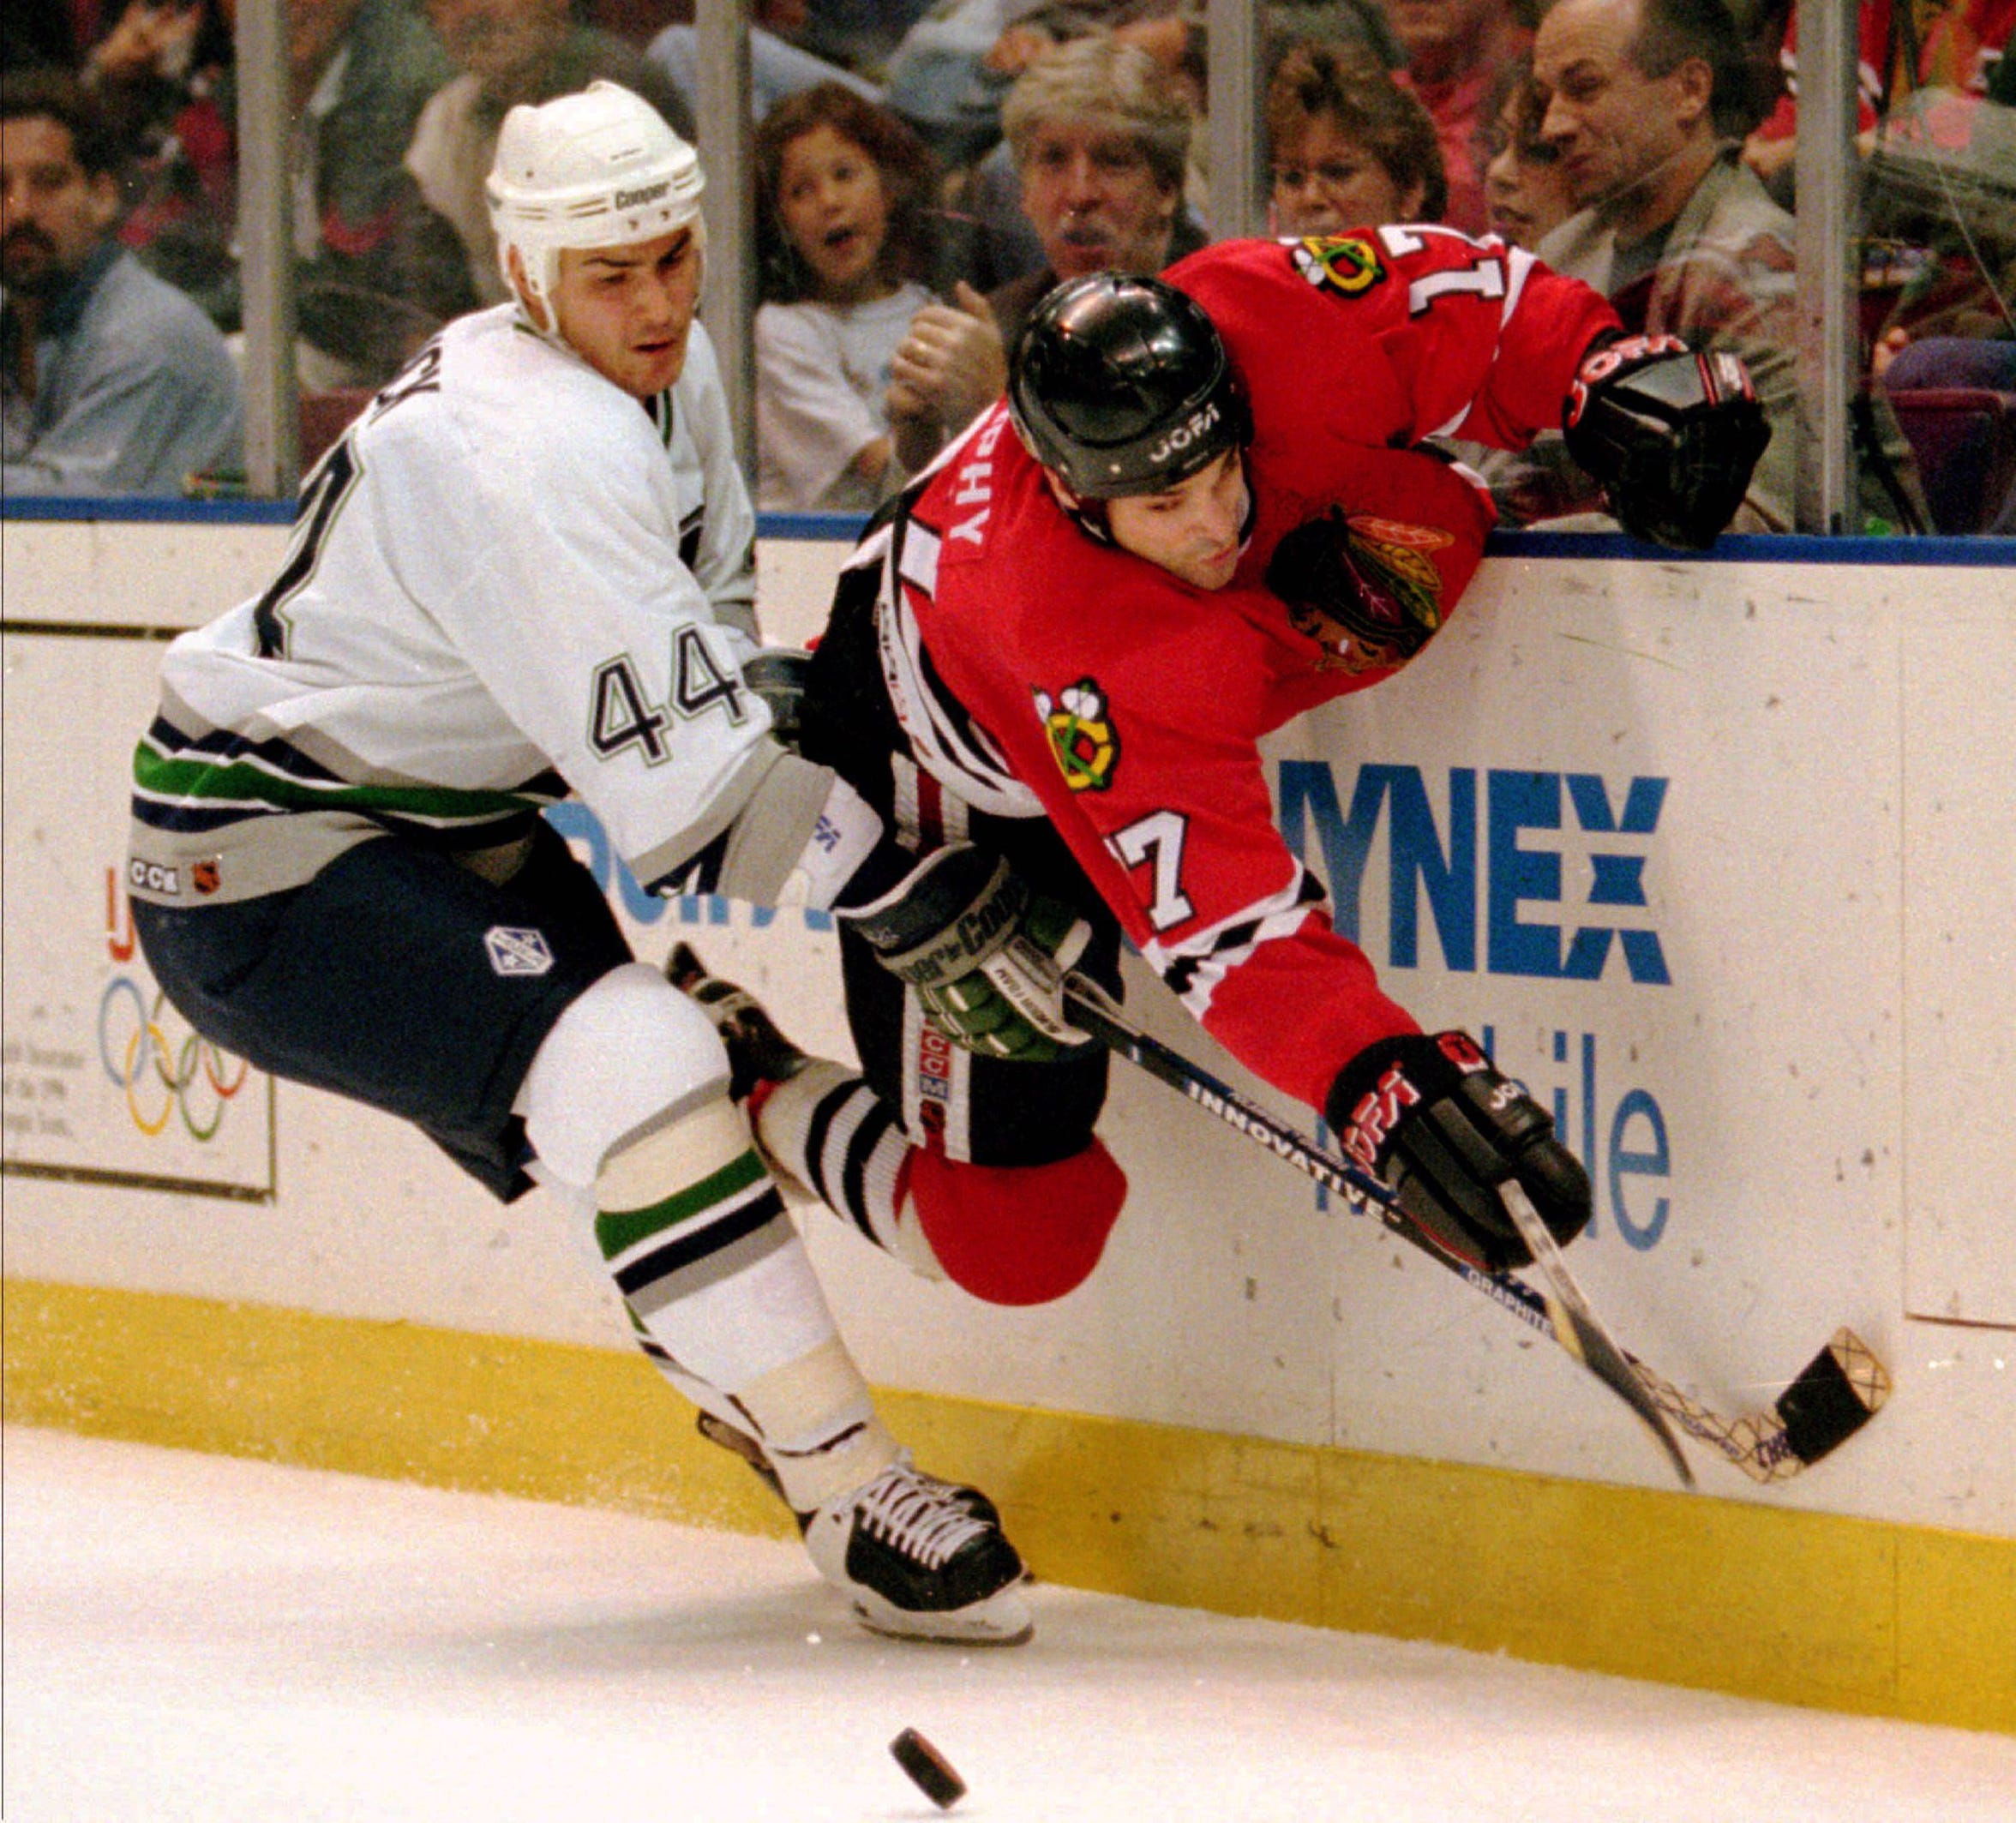 Chicago Blackhawks winger Joe Murphy, right, goes flying against the boards as he fights for the puck with Hartford Whalers defenseman Gerald Diduck (44) behind the Whalers' net during first-period action at the Hartford Civic Center, Saturday, Oct. 14, 1995. (AP Photo/Richard Mei)